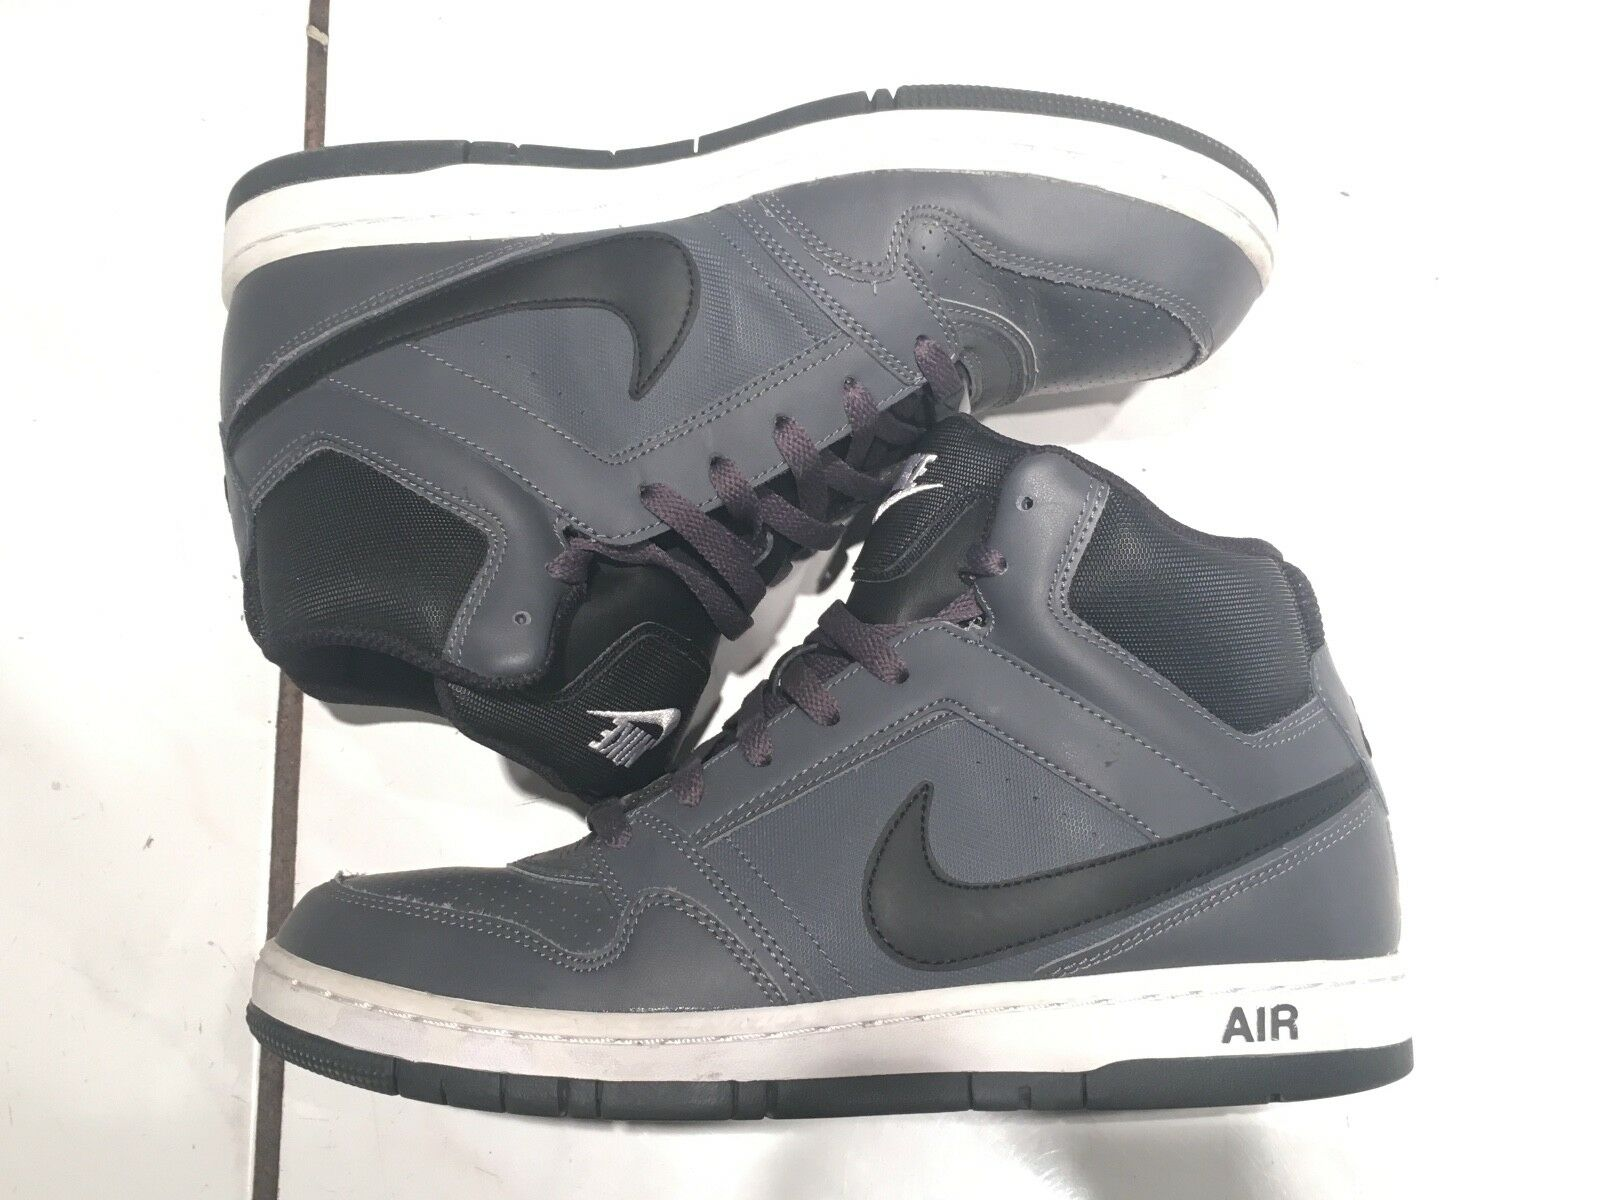 Nike Air Prestige III Mens Very High Top Grey/Gray, Black and White 9